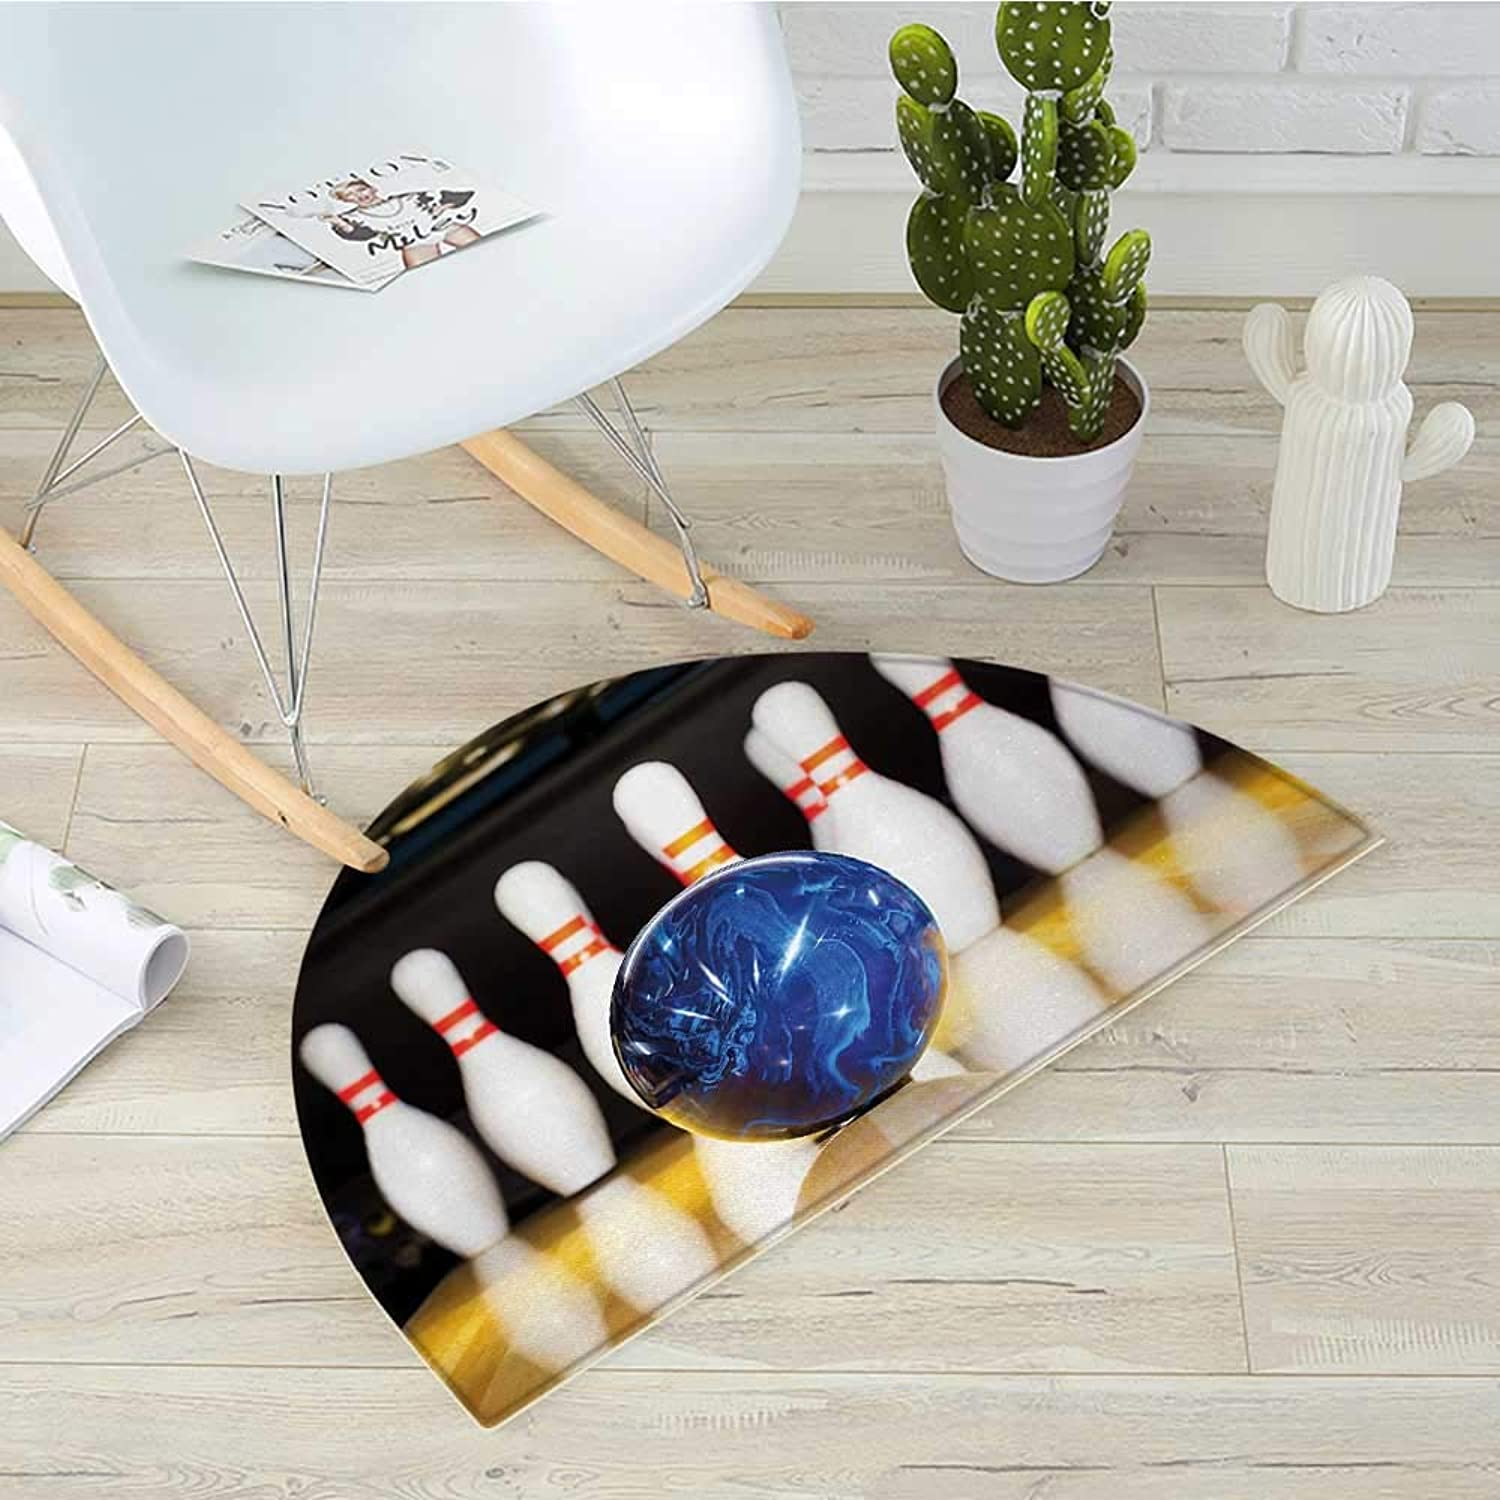 Bowling Party Semicircular Cushionbluee Abstract Ball on The Lane Pins Close Up View Sports Leisure Time Game Entry Door Mat H 39.3  xD 59  Multicolor